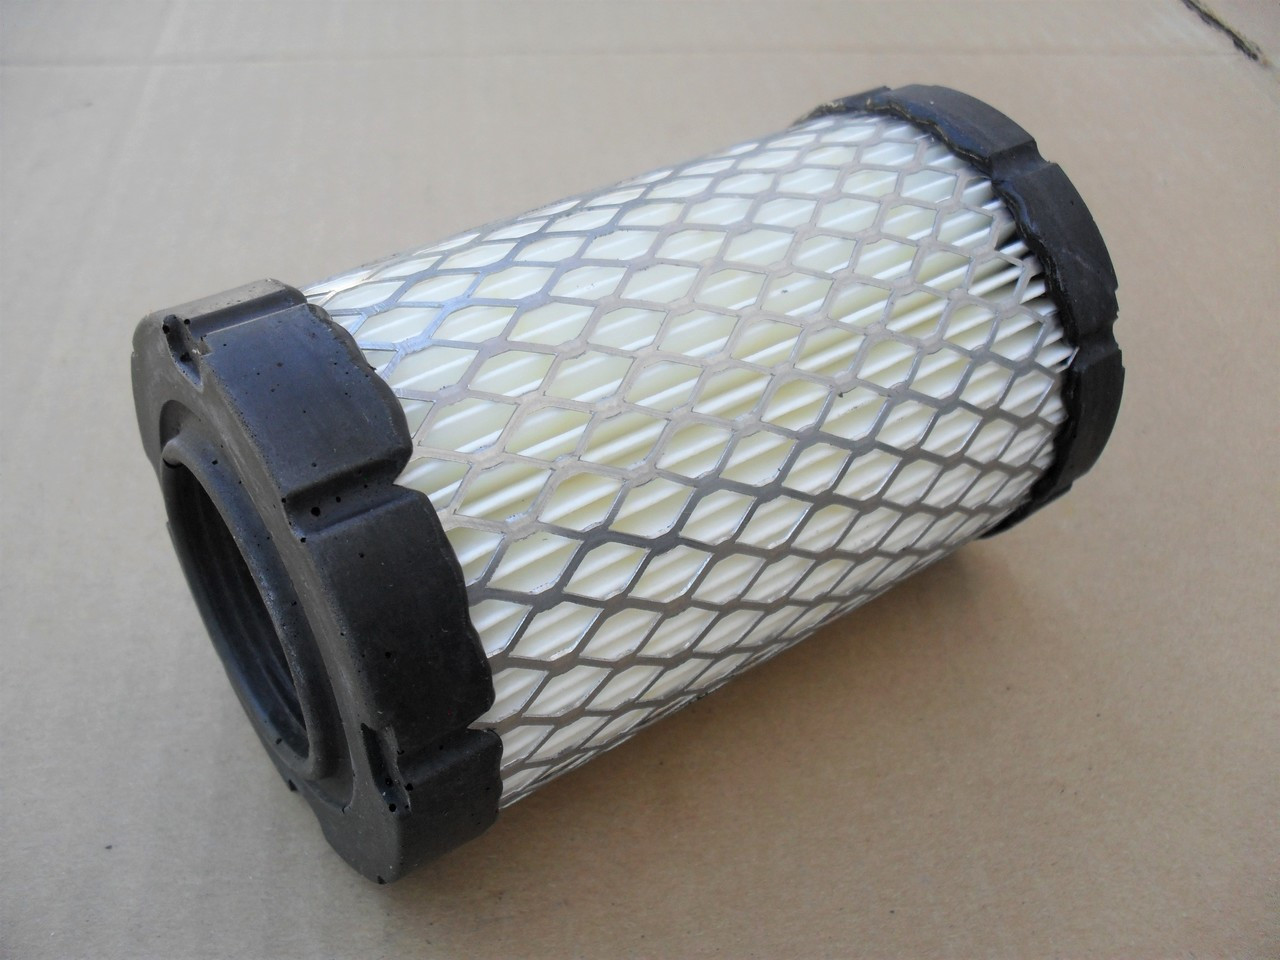 Air Filter for Briggs and Stratton 590825, 591334, 594201, 796031, 4243, 5421, 5428, 5428K &